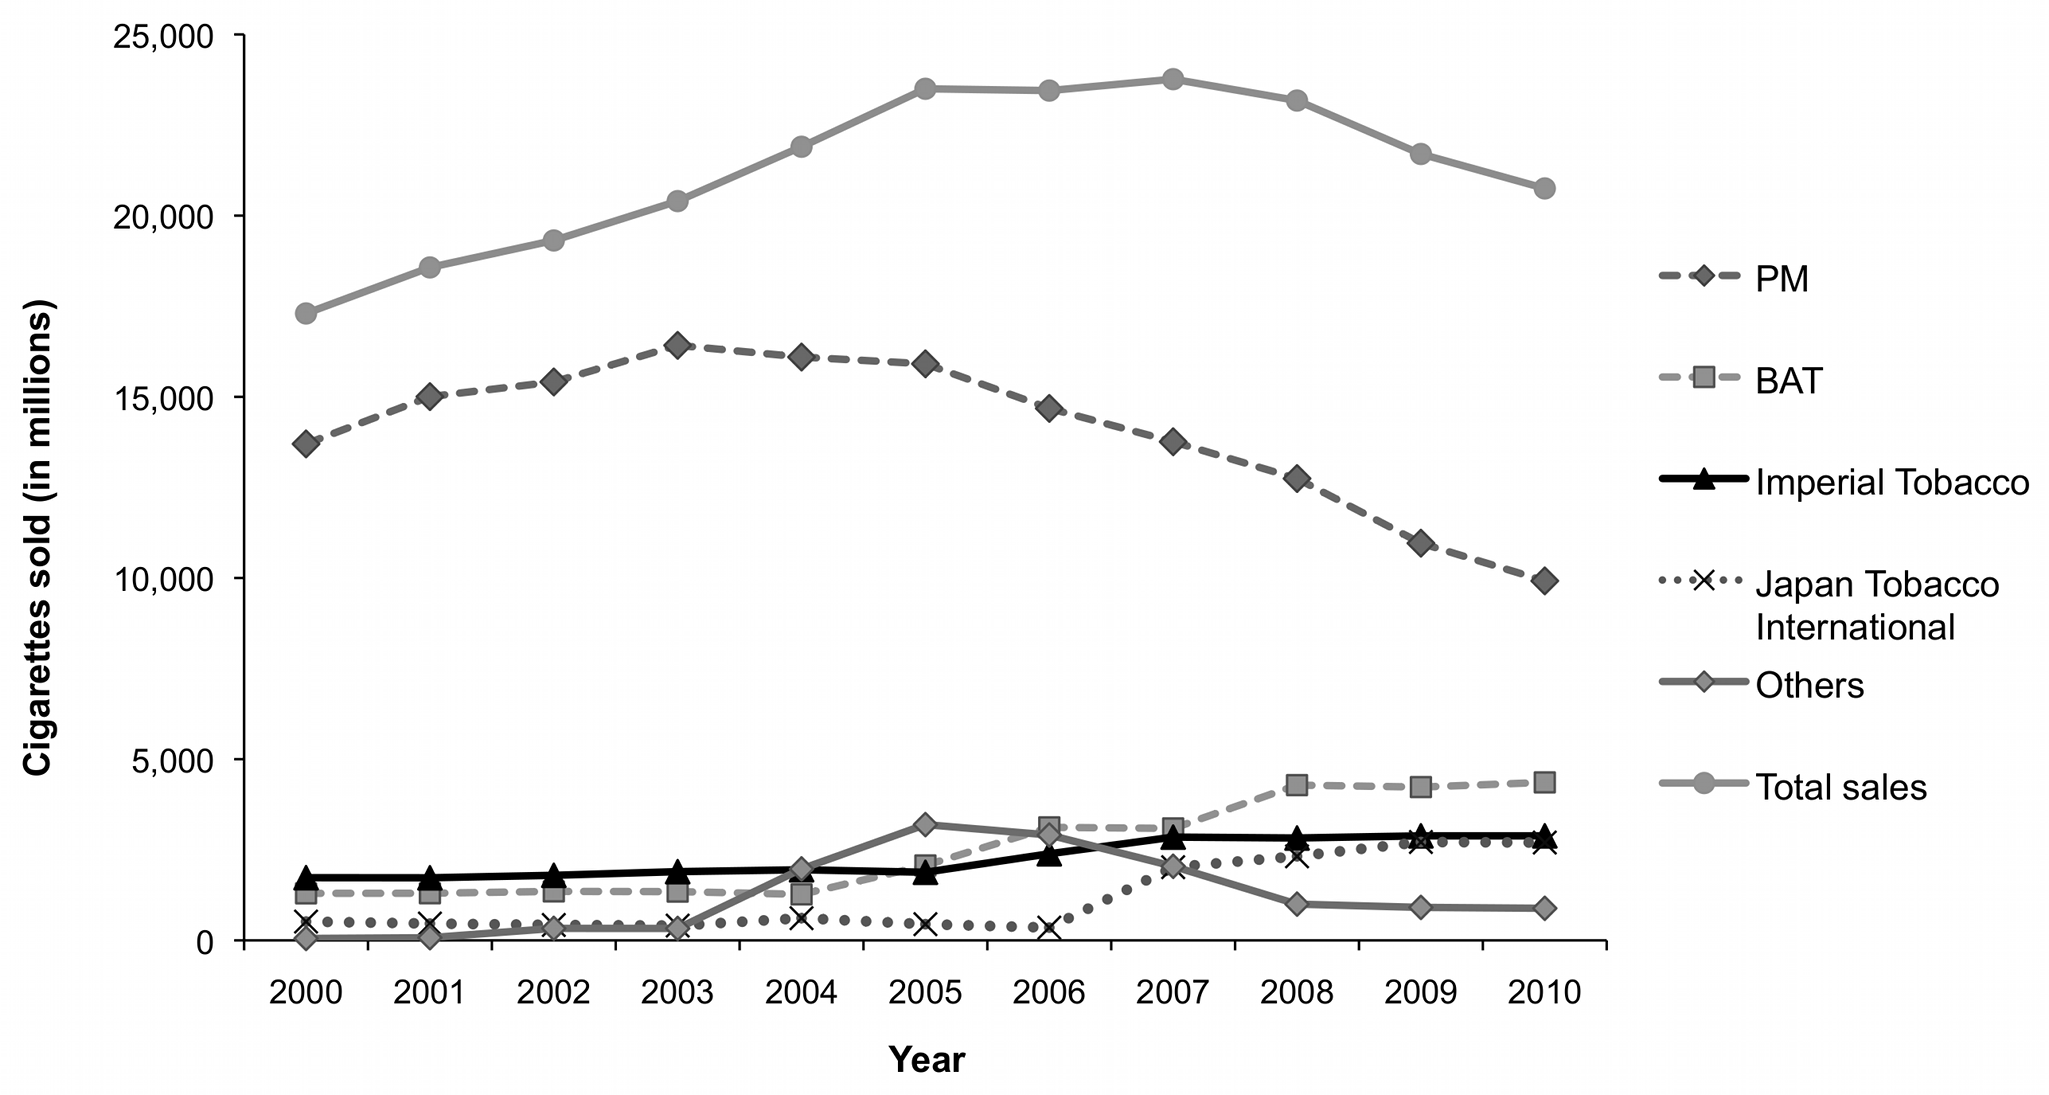 Cigarette sales by volume (in millions) overall and by company in the Czech Republic, 2000–2010.